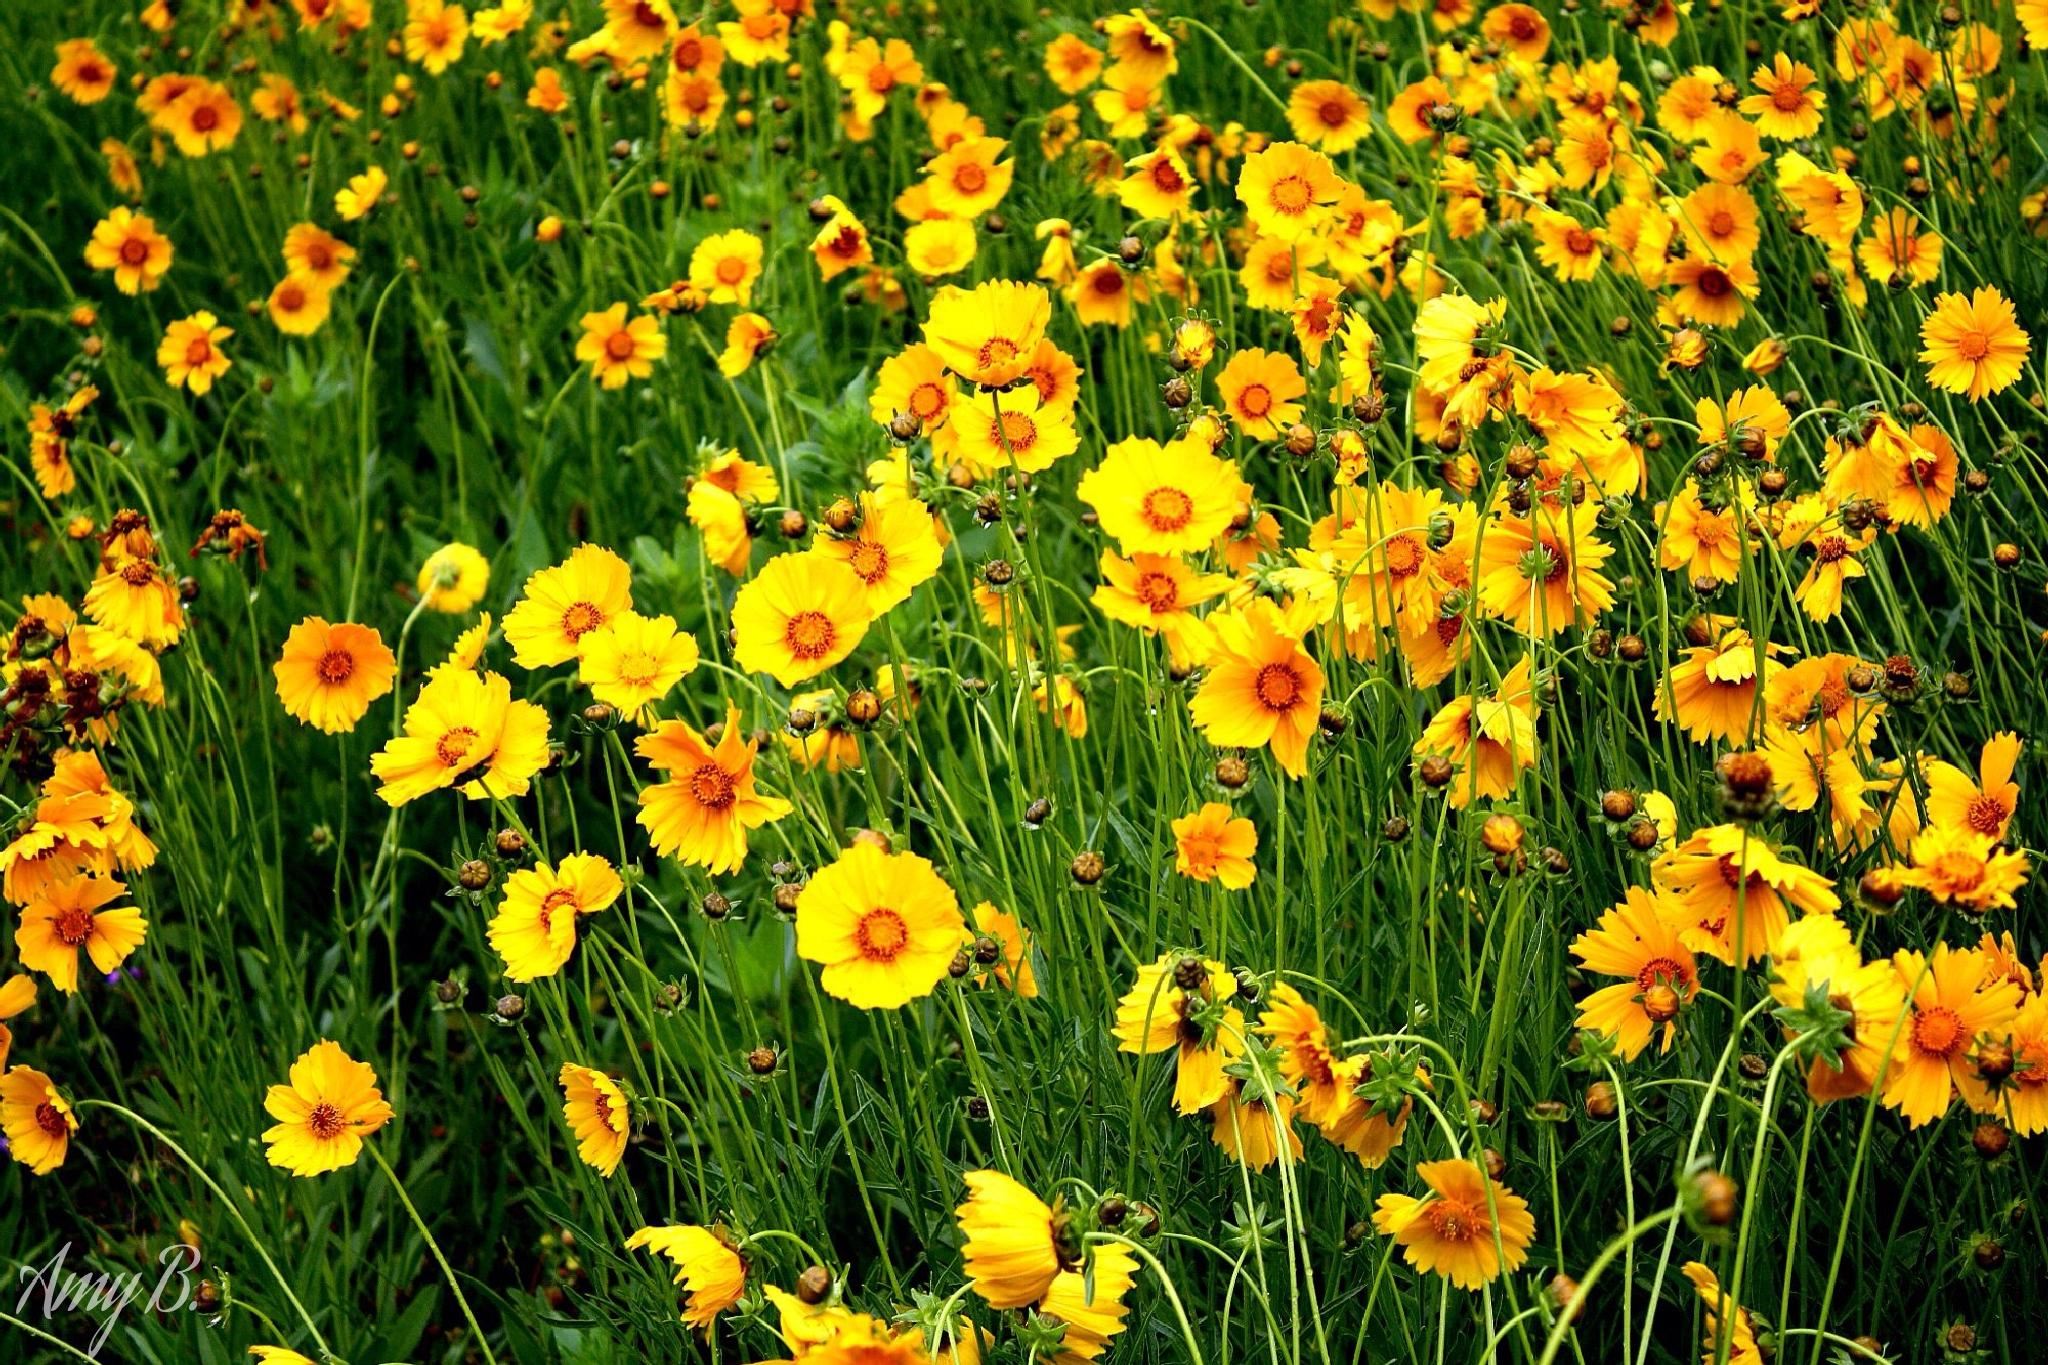 Fields of gold by amy.conger.9